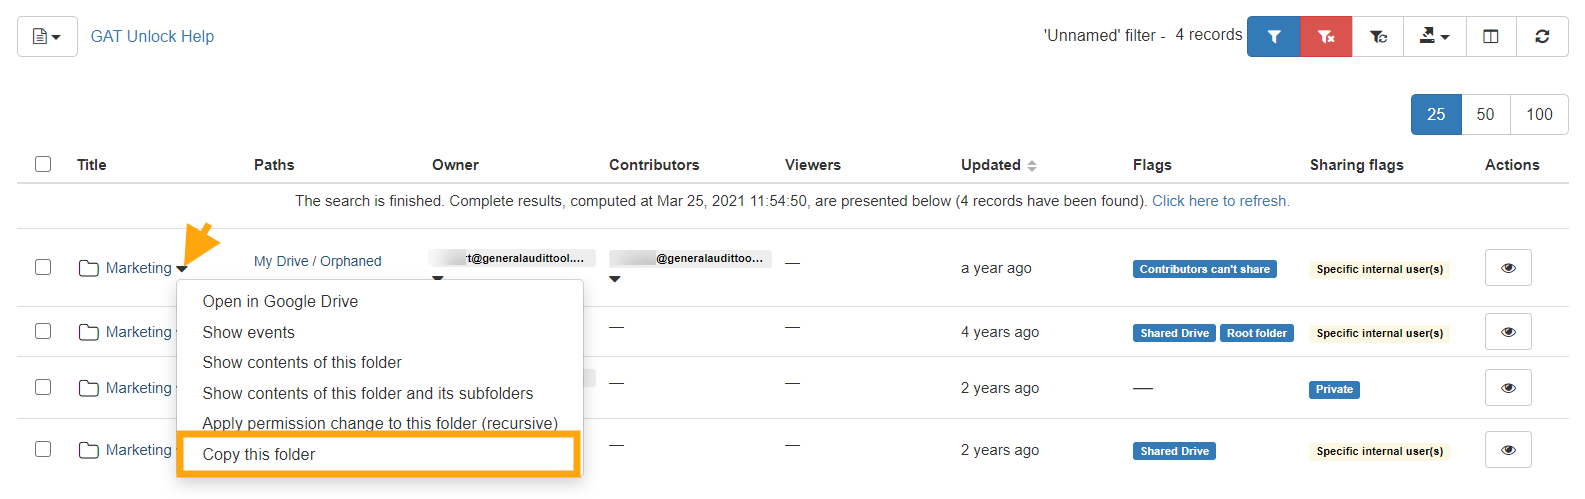 GAT Unlock | Copy Externally Owned Folders and its Content to Your Google Drive (while retaining folders' structure) 2